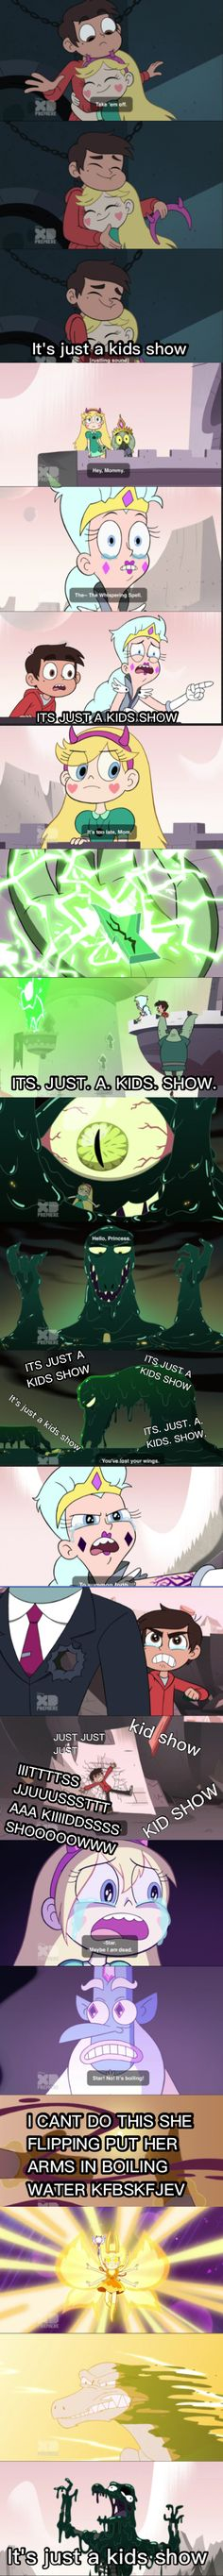 It's just a kids show |Star vs the Forces of Evil| Made by @livieblue